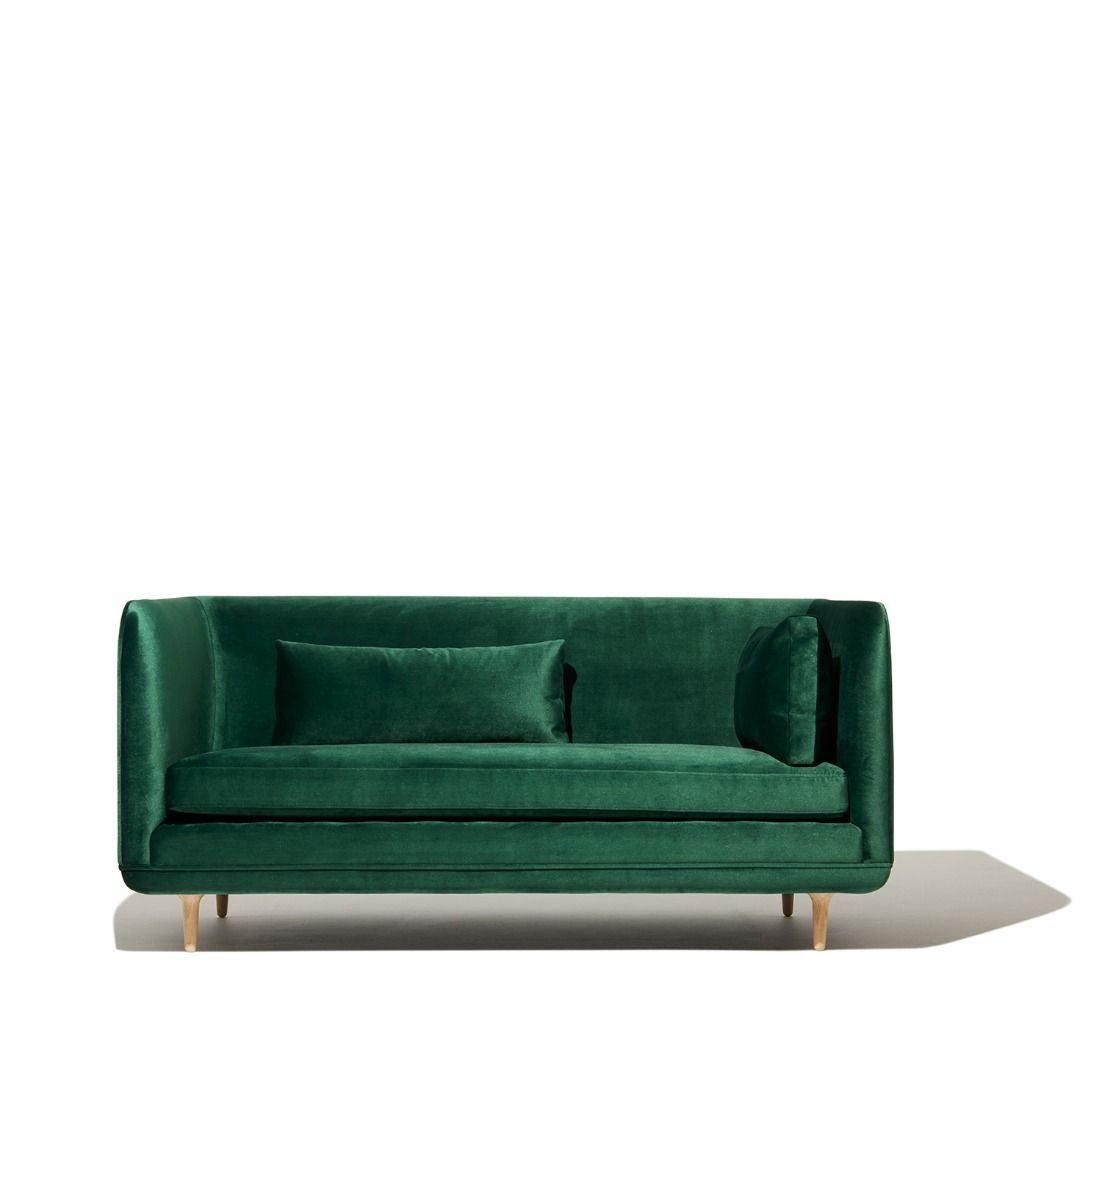 Clement Sofa Living Room Decor